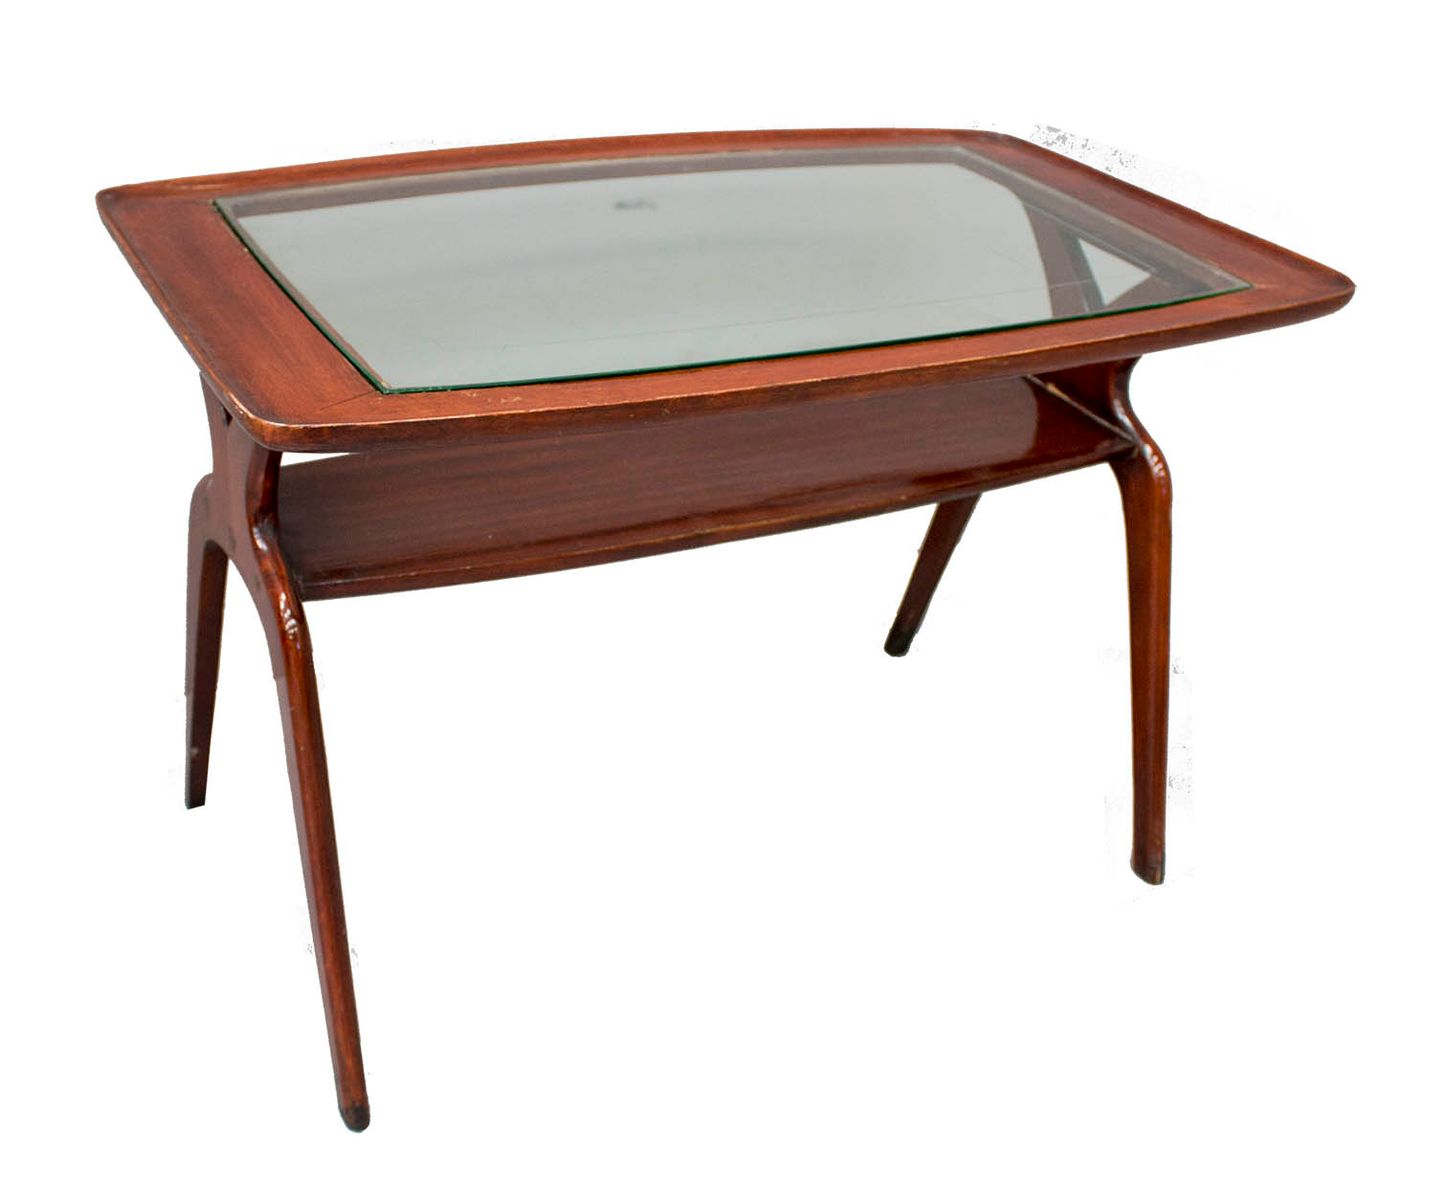 Coffee Table 1950s: Italian Coffee Table, 1950s For Sale At Pamono